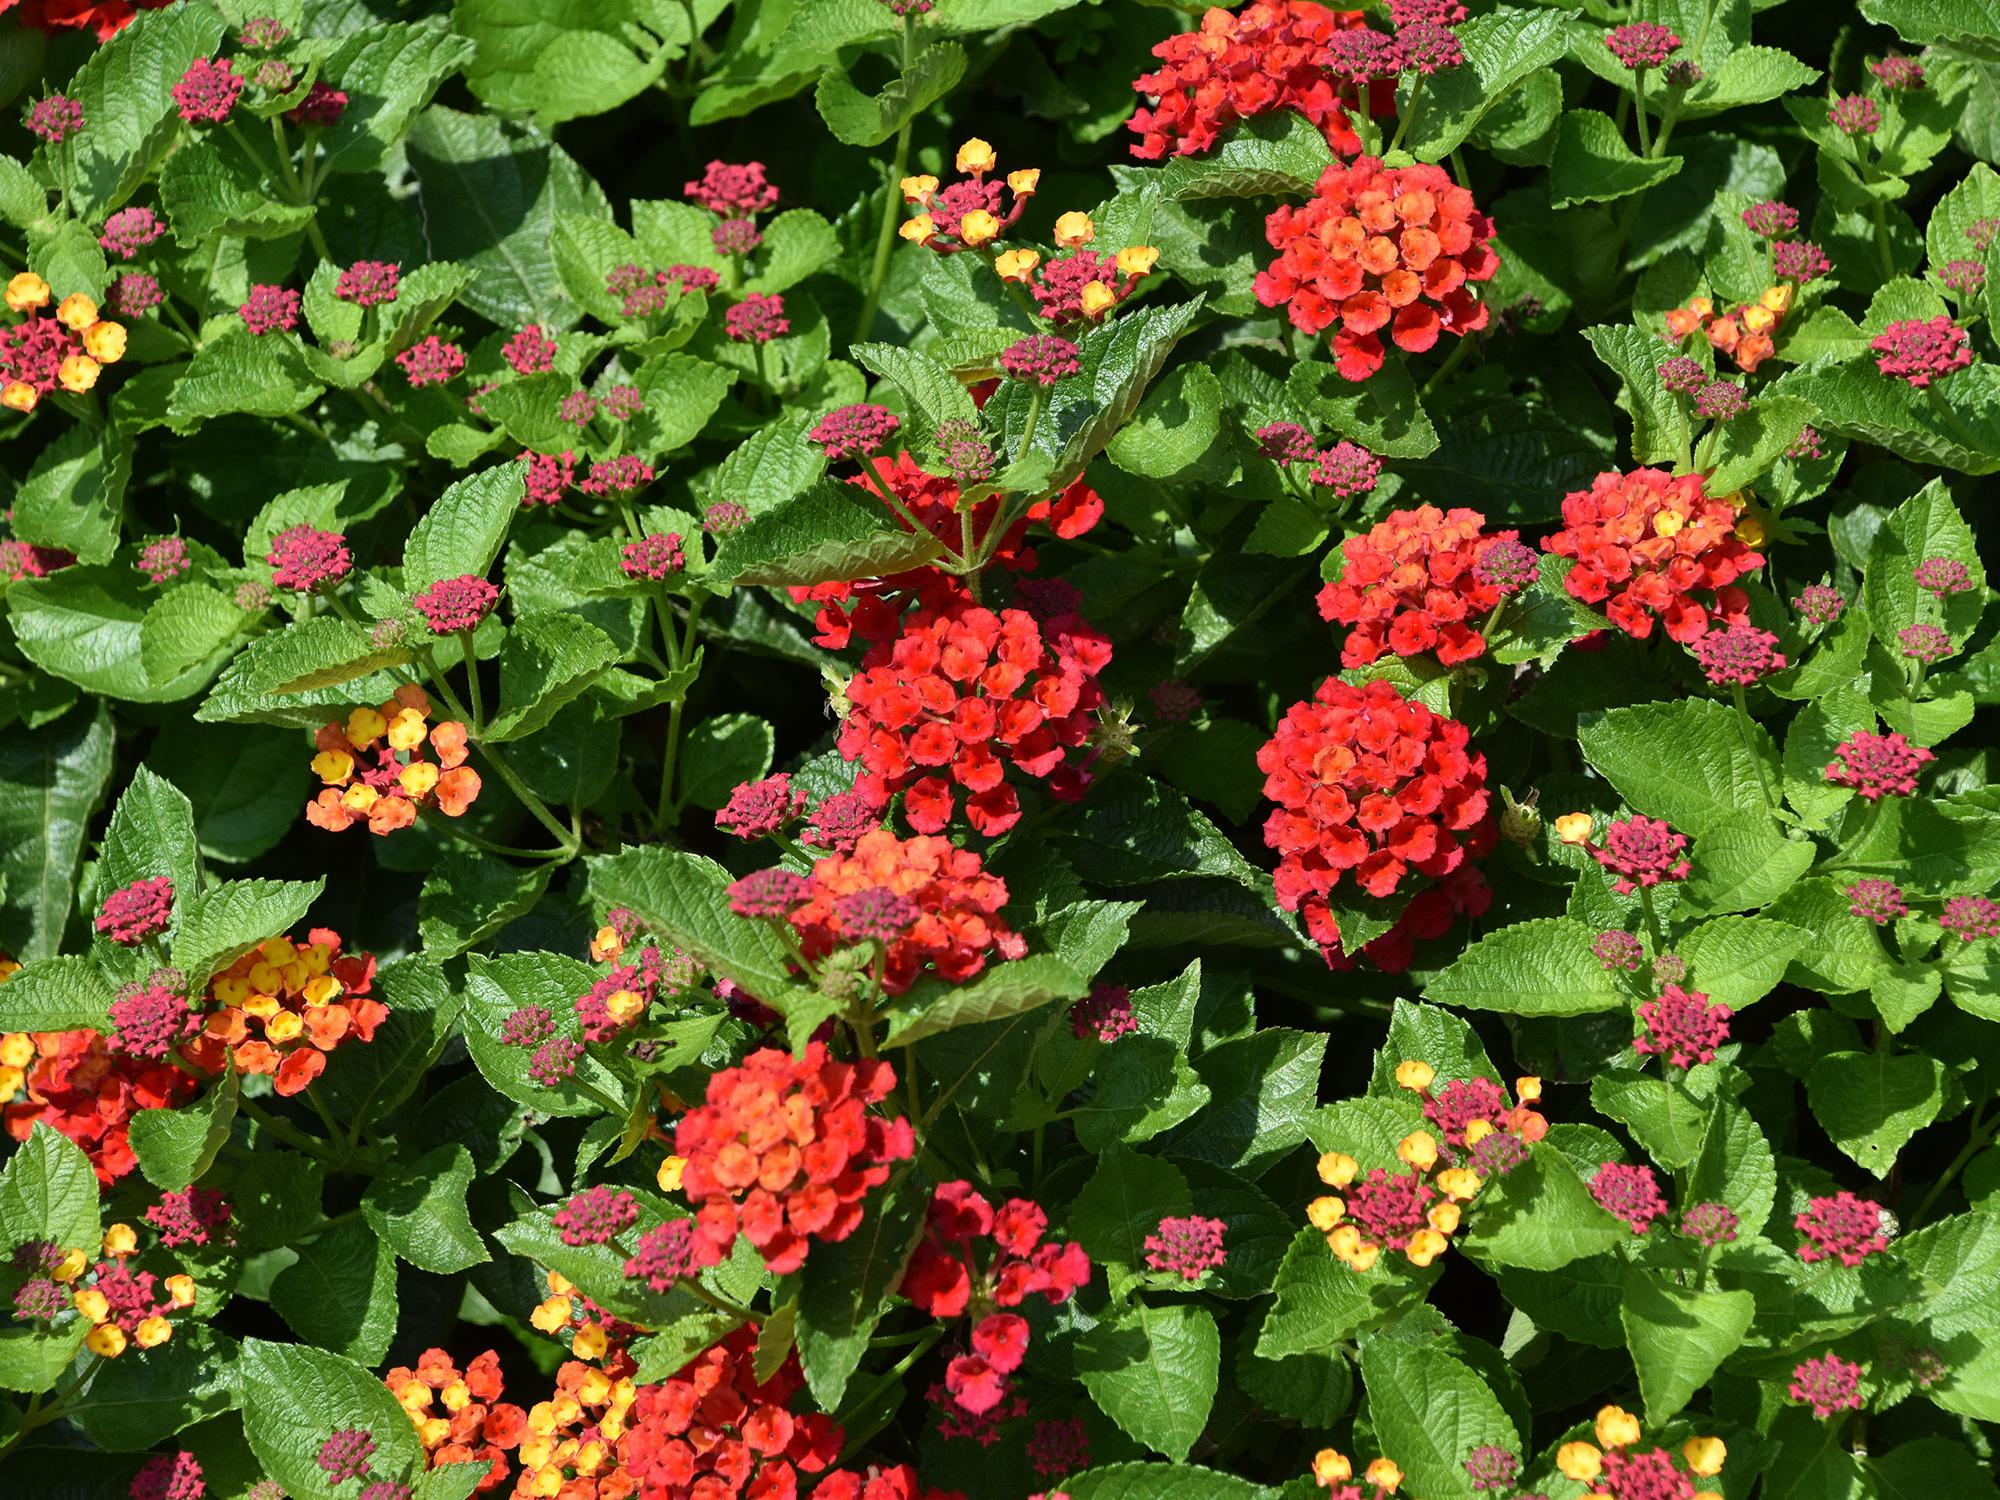 Clusters of bright red flowers are seen on a background of green leaves.